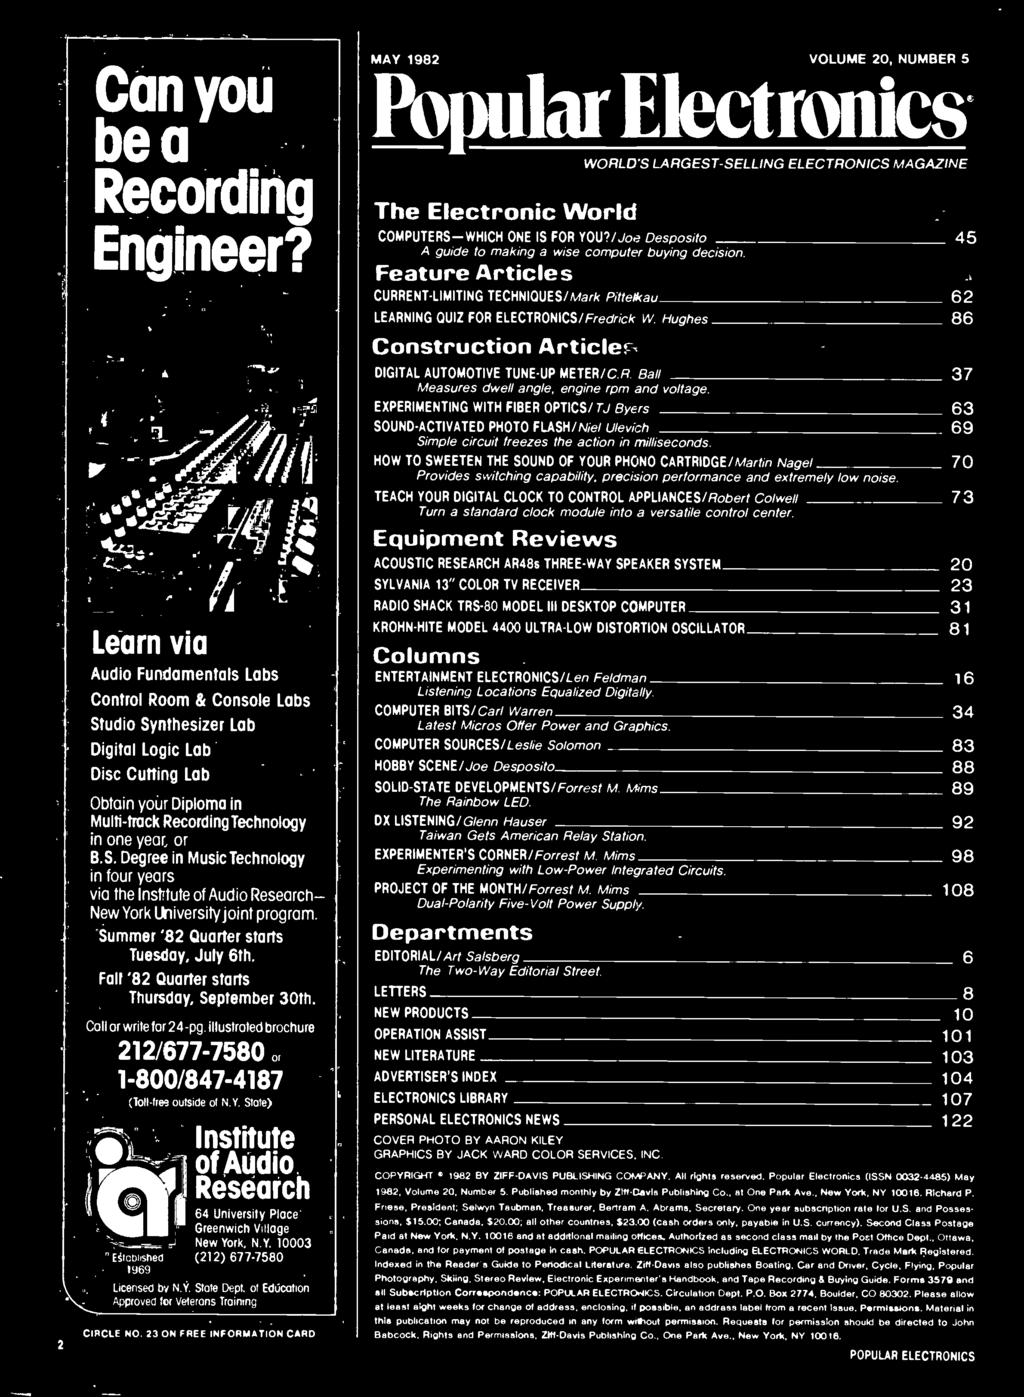 Coniesg Worlds Largest Selling Electronics Magazine May 1982 1 Pdf Generator Schematic Beck Mag Ic Pulser Emp Pulse Volume 20 Number 5 Popular The Electronic